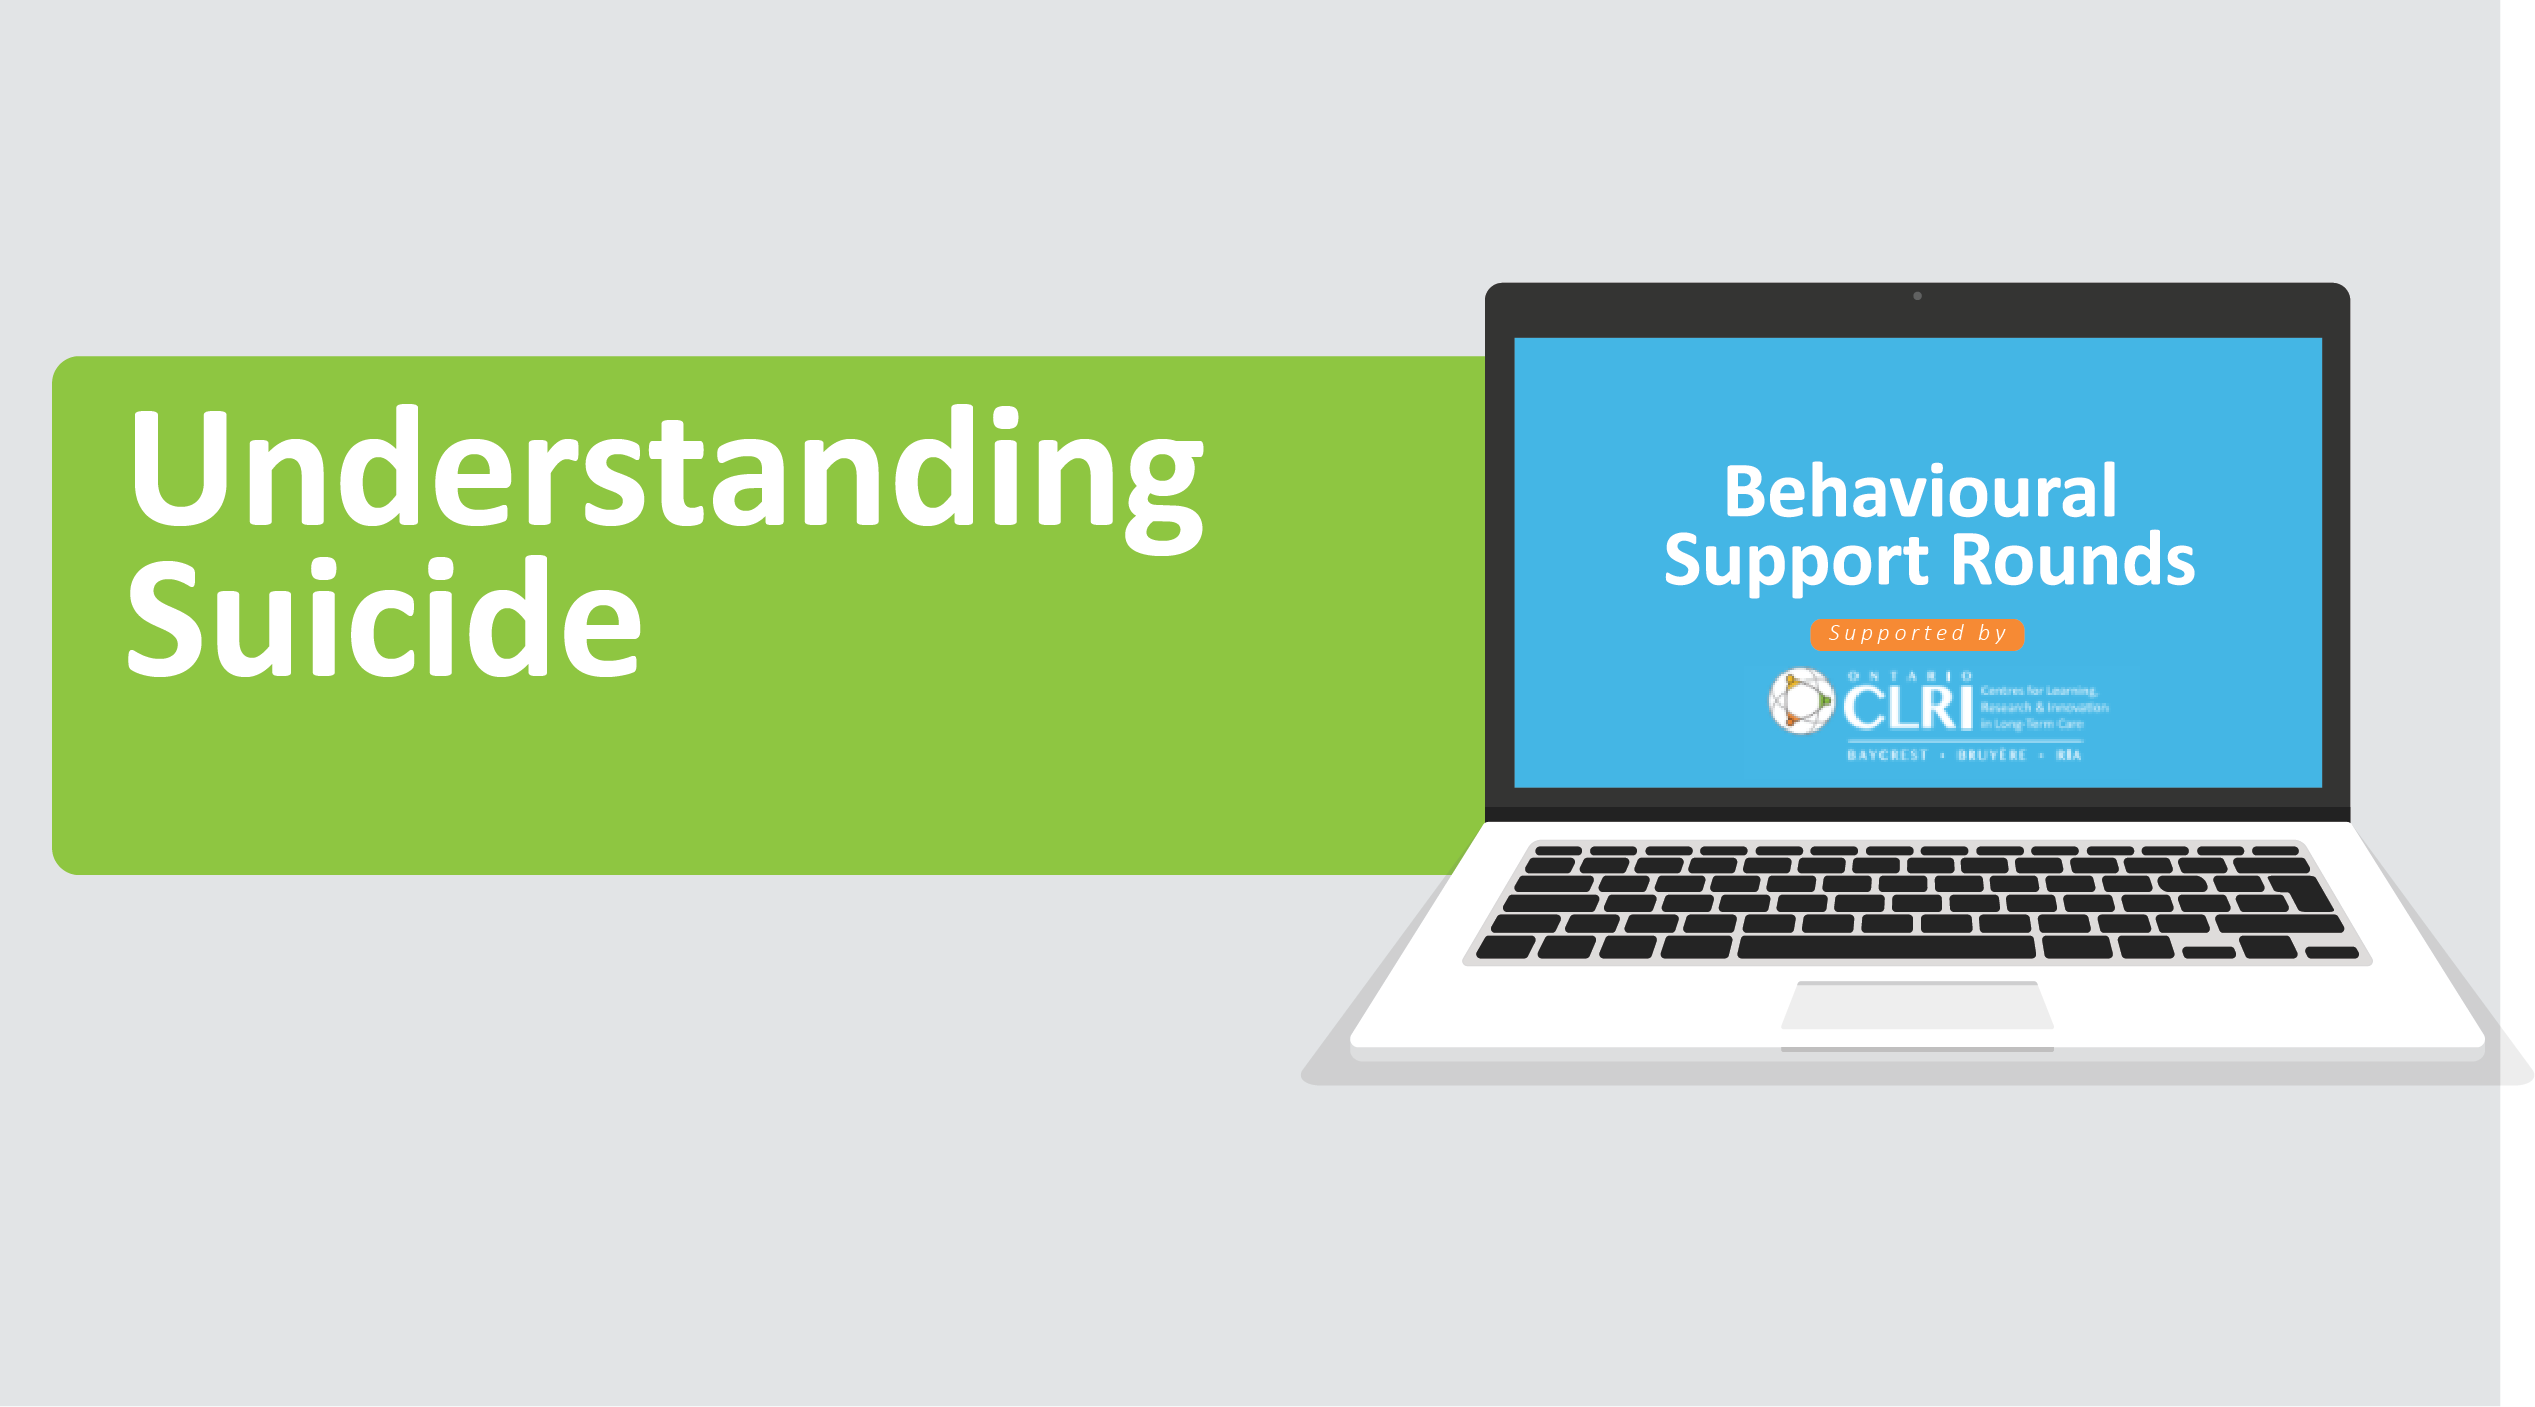 Webinar title, supported by Ontario CLRI